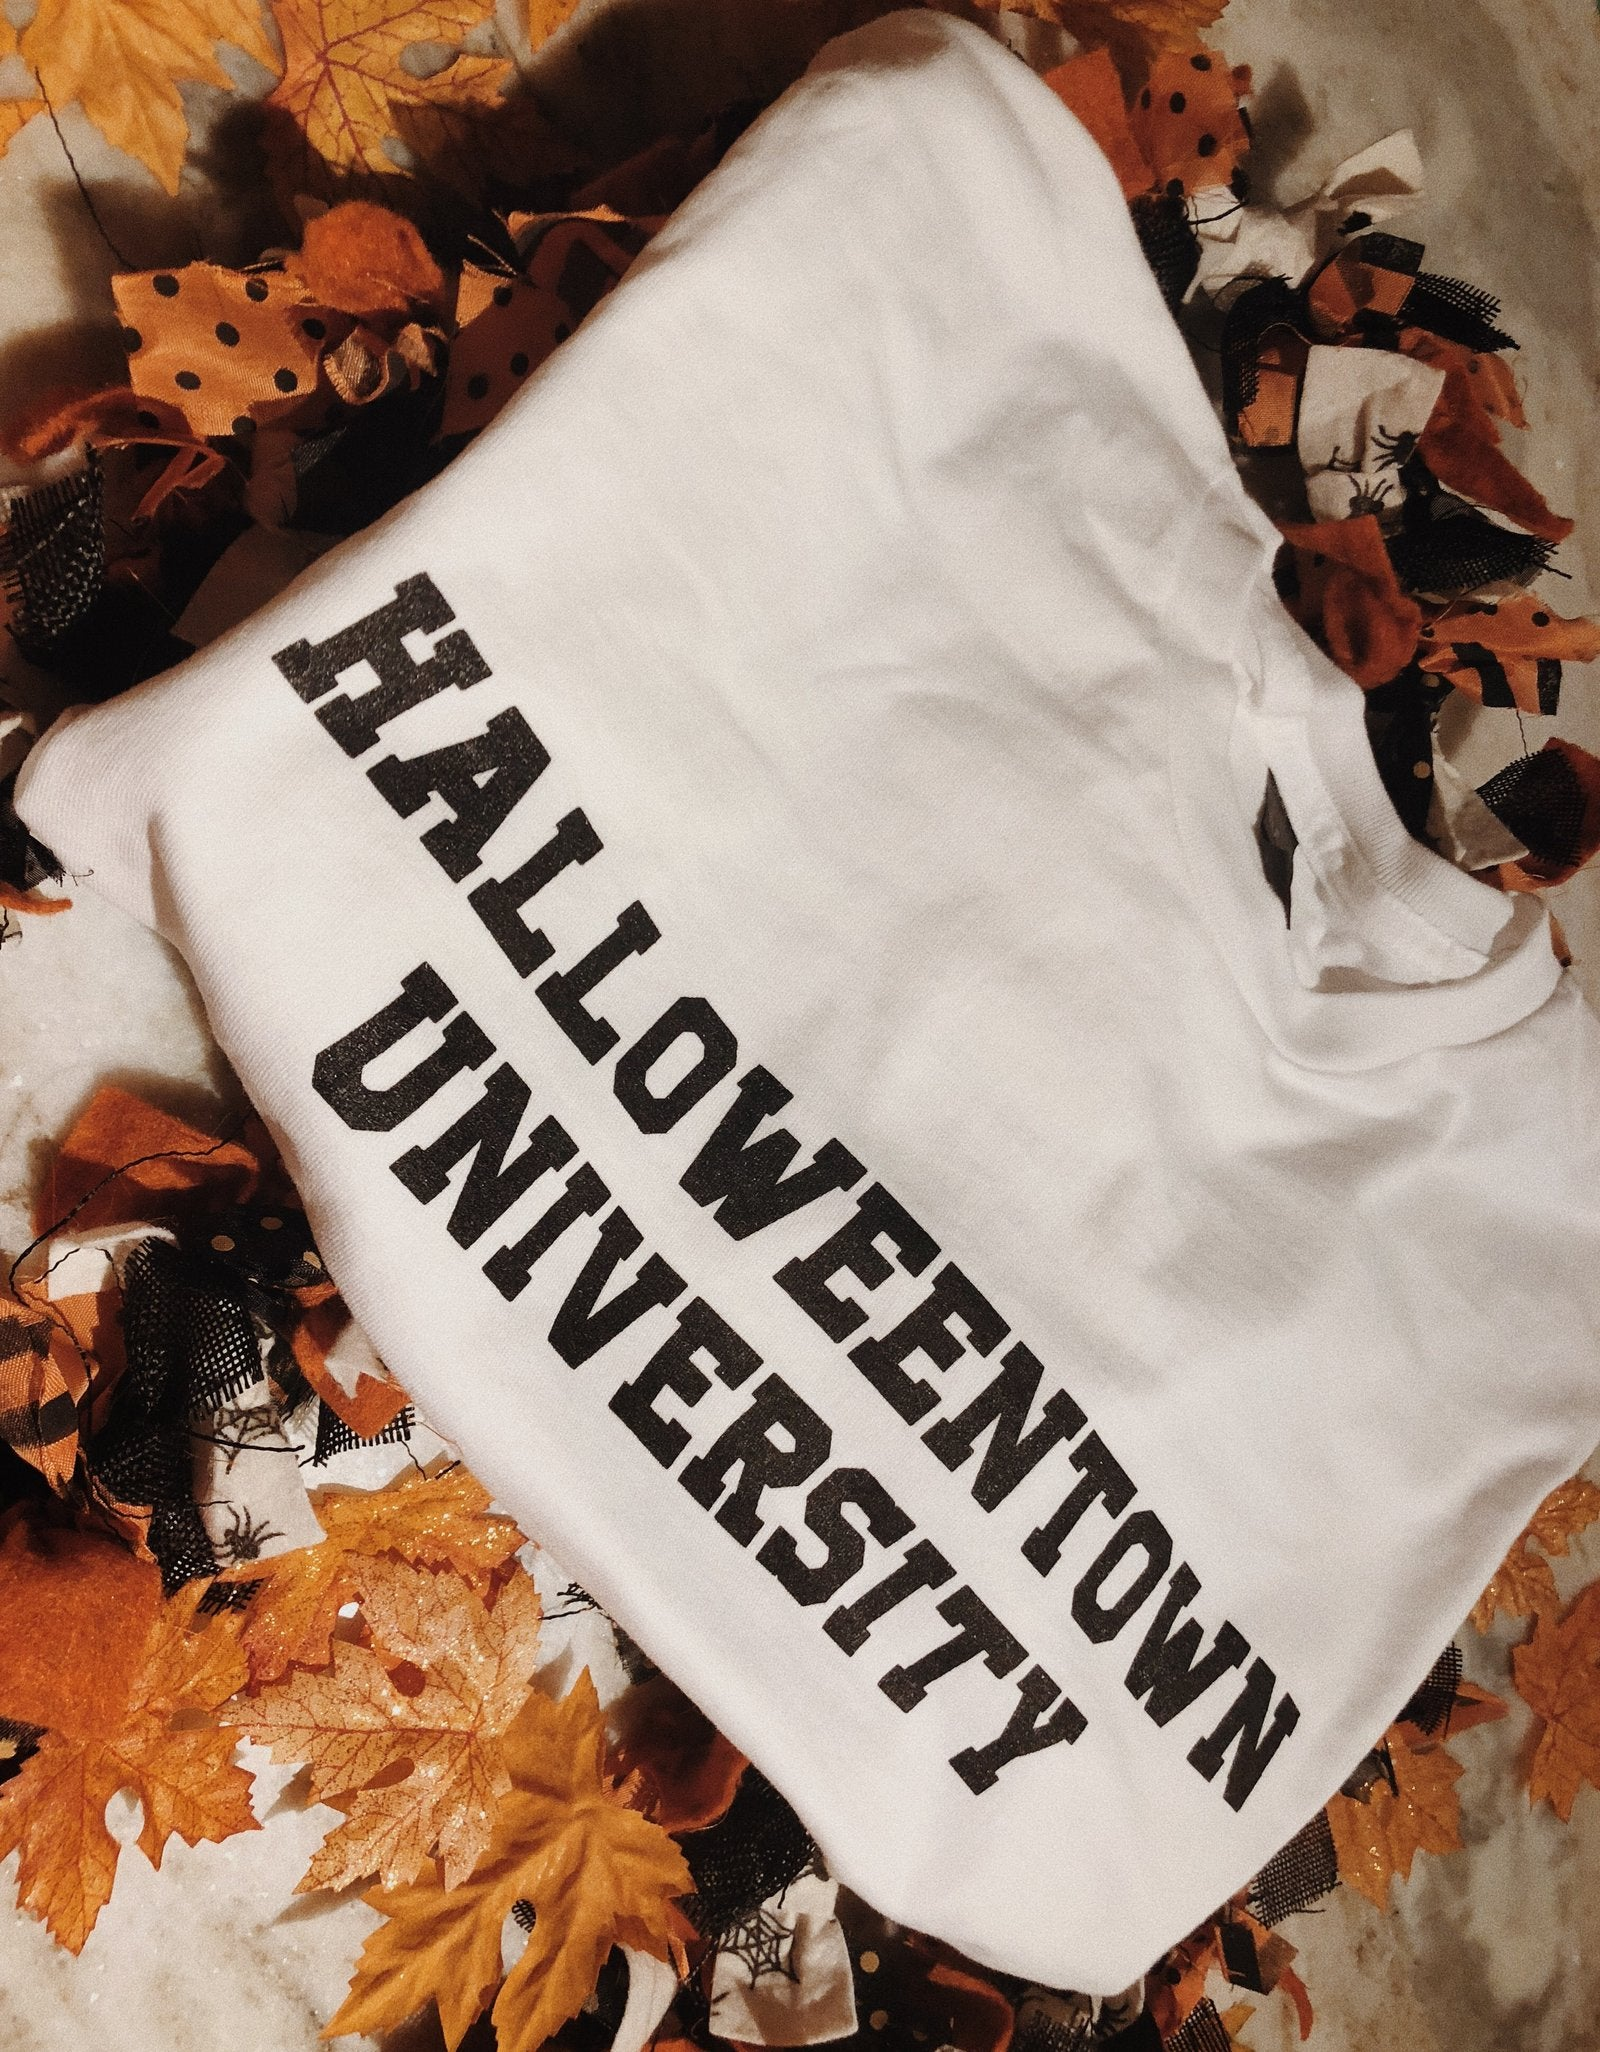 Halloweentown University